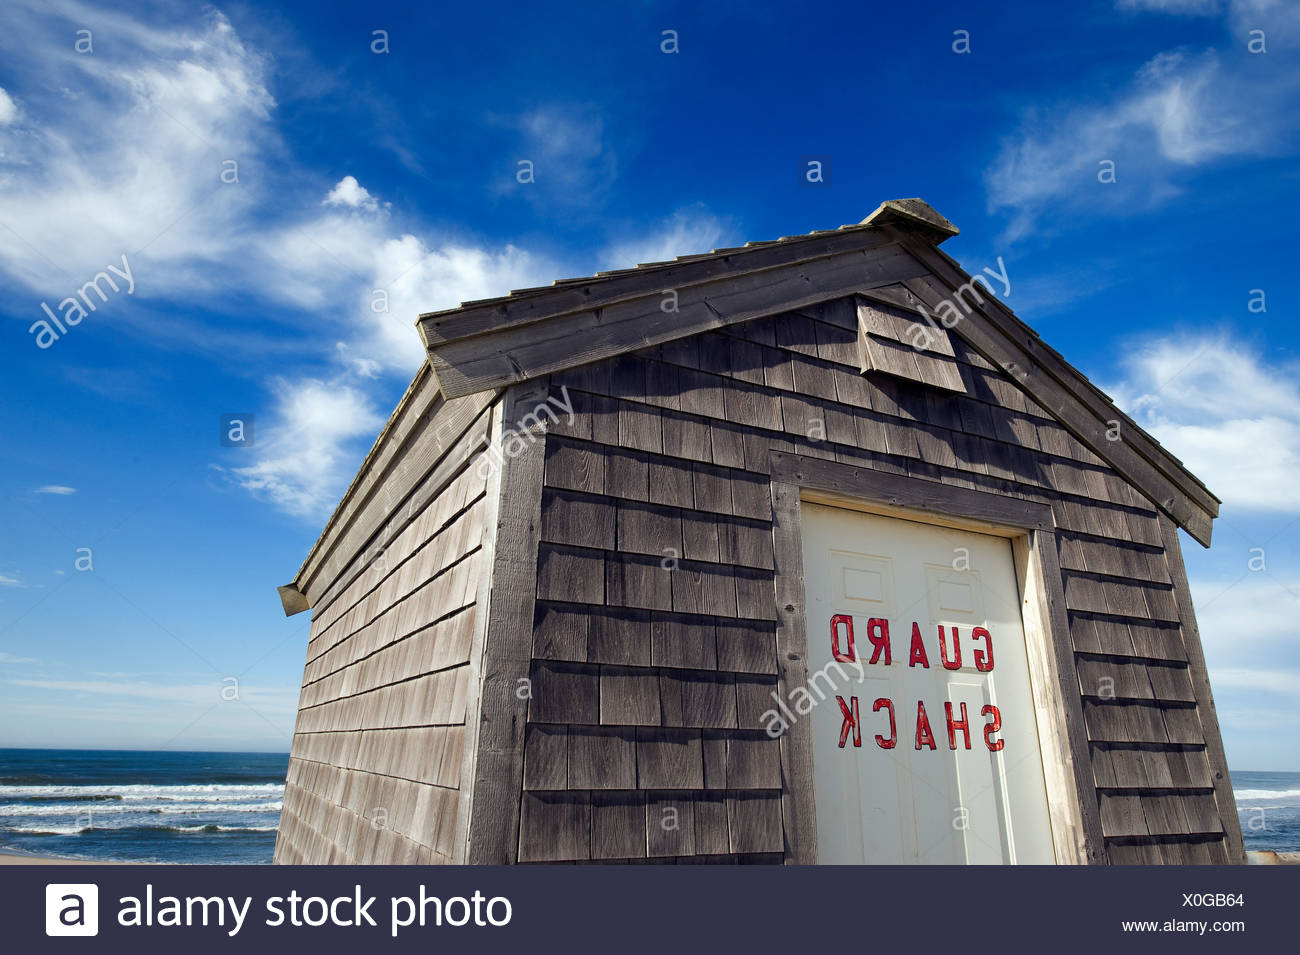 a06ed5a9b086 Lifeguard shack Head of Meadow Beach Truro Cape Cod MA - Stock Image